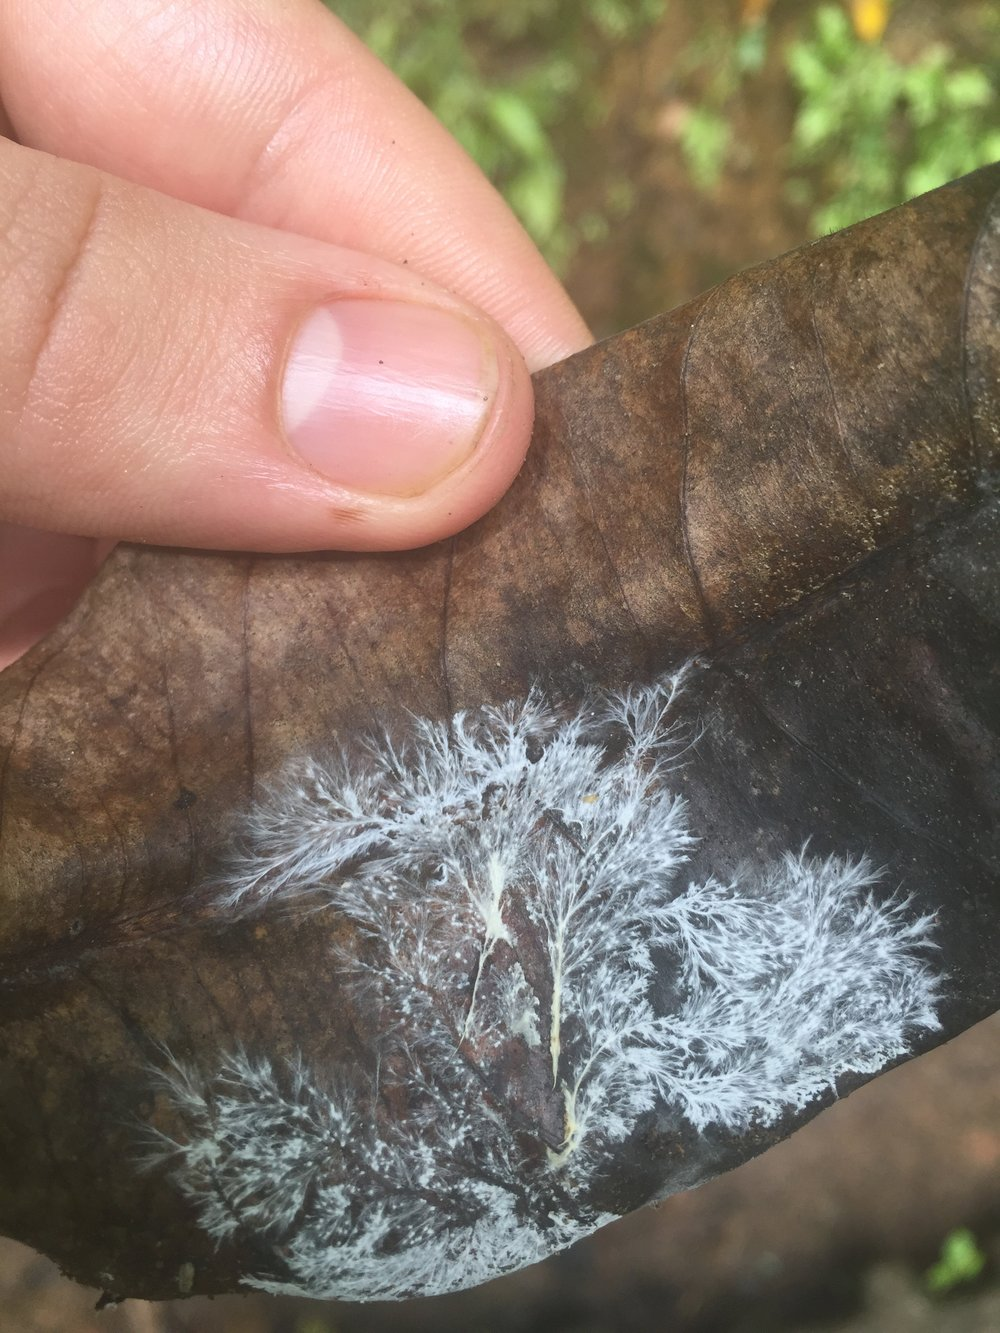 Mycelium spreading over and consuming a fallen leaf in Costa Rica.